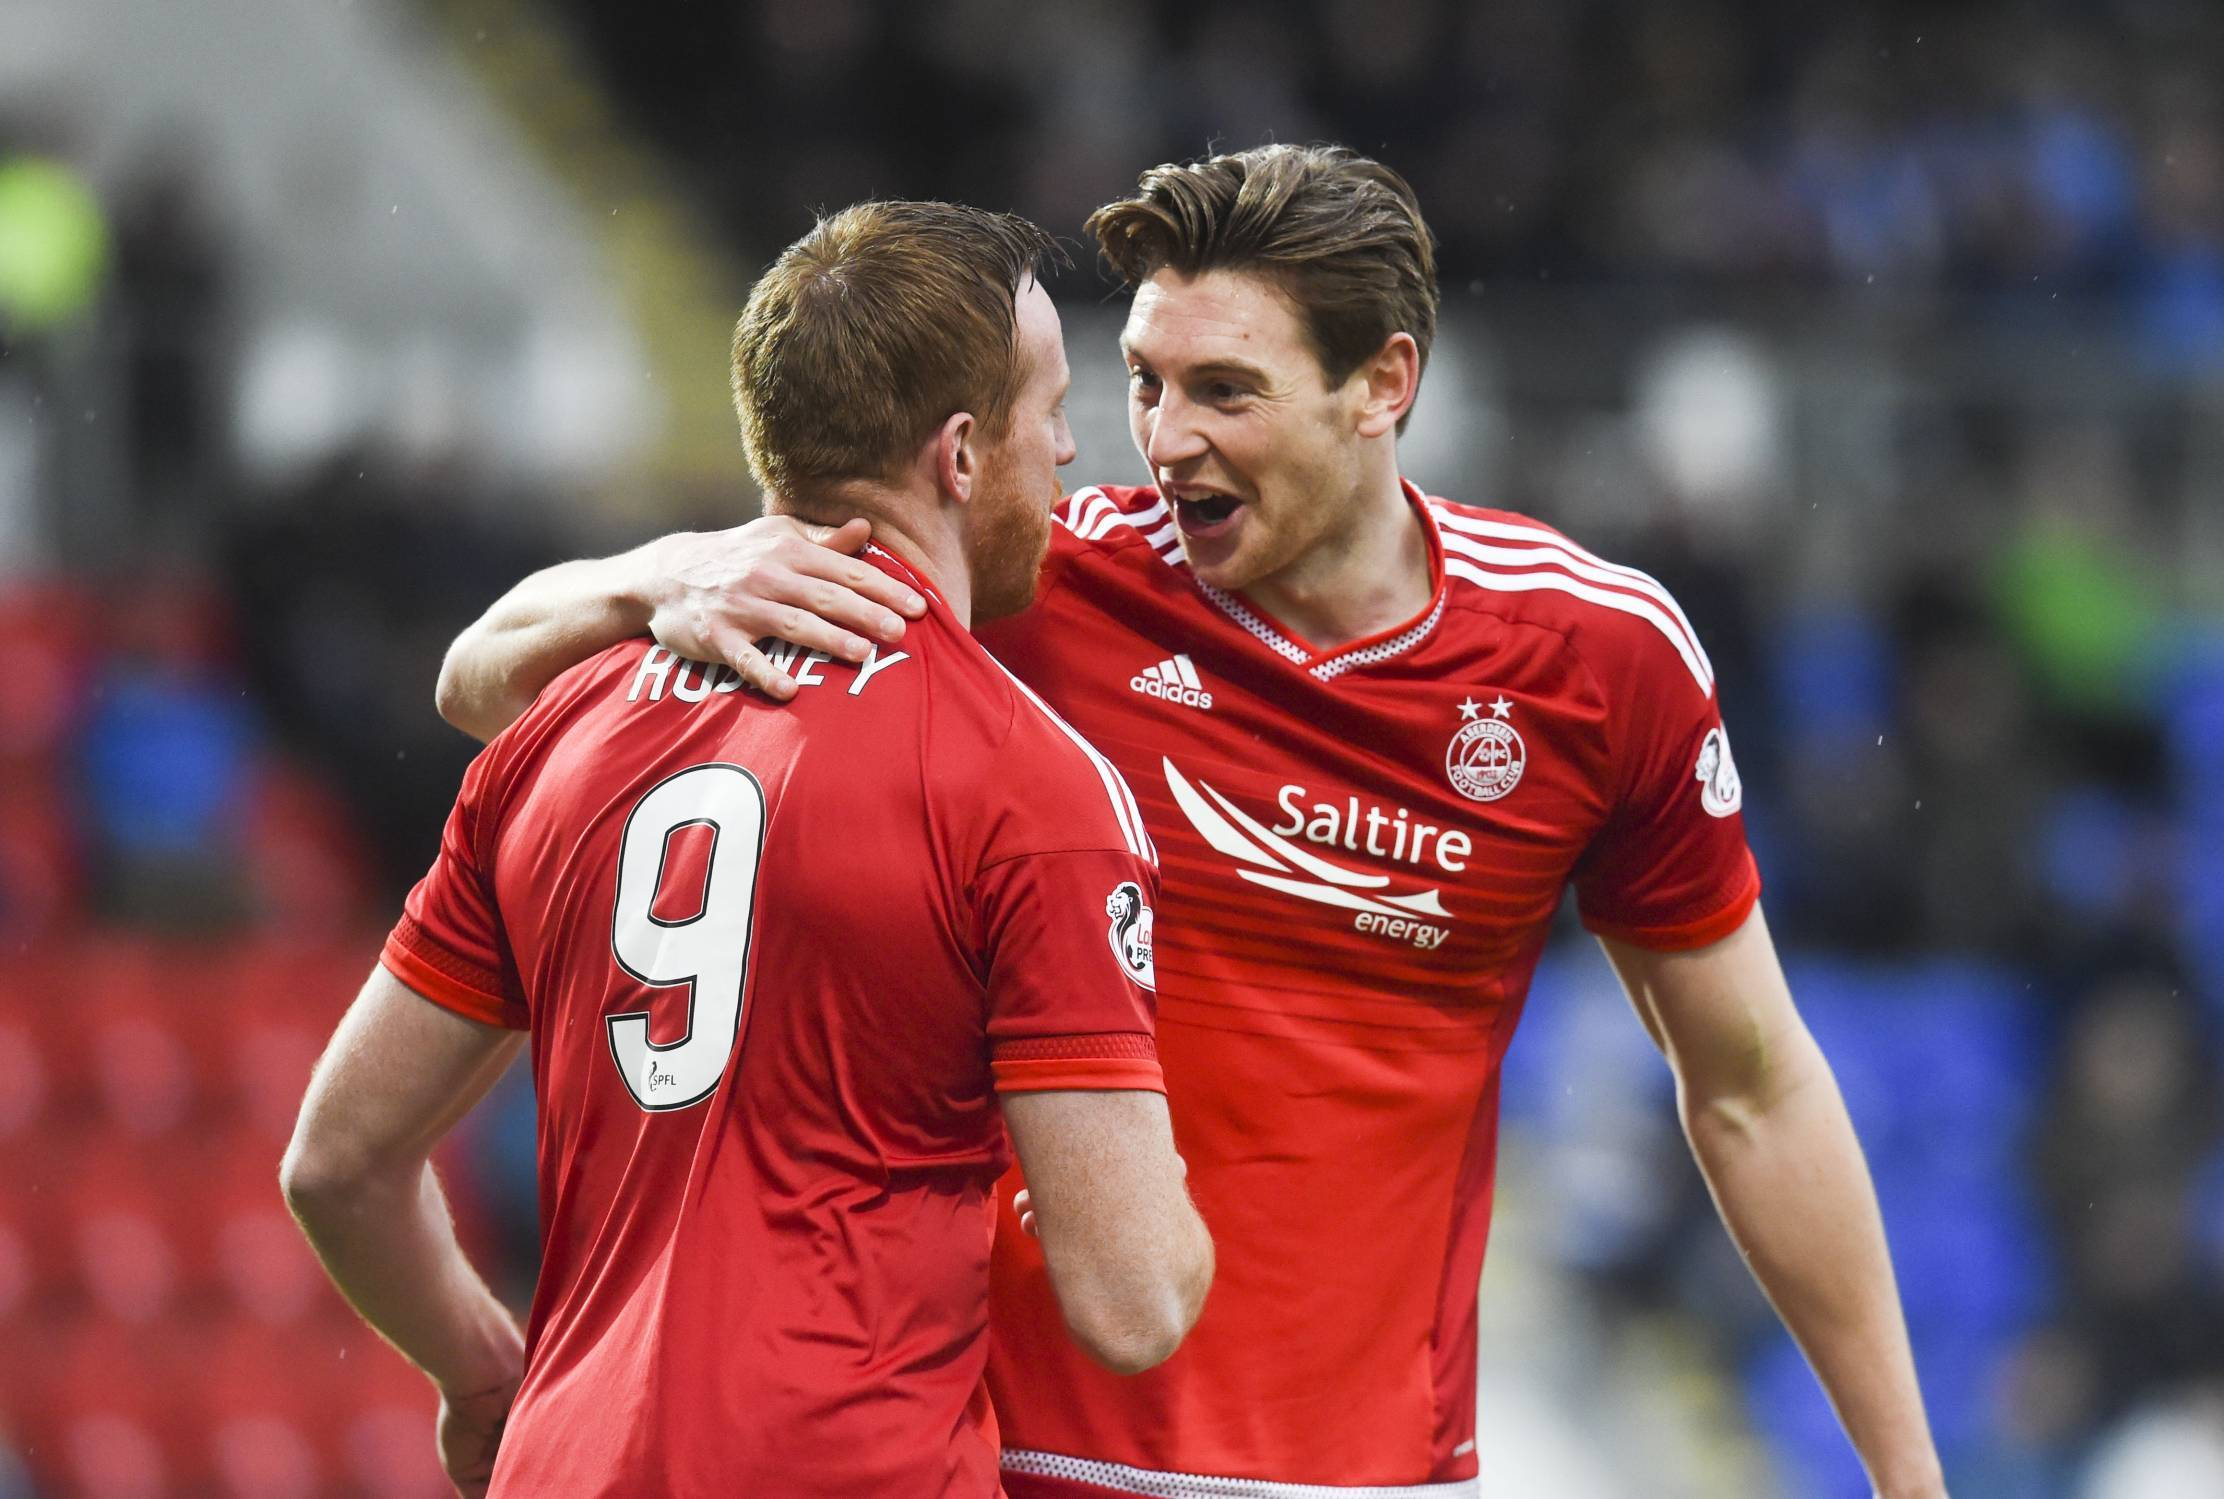 Aberdeen's Adam Rooney (left) celebrates his first goal of the game with team mate Ash Taylor.